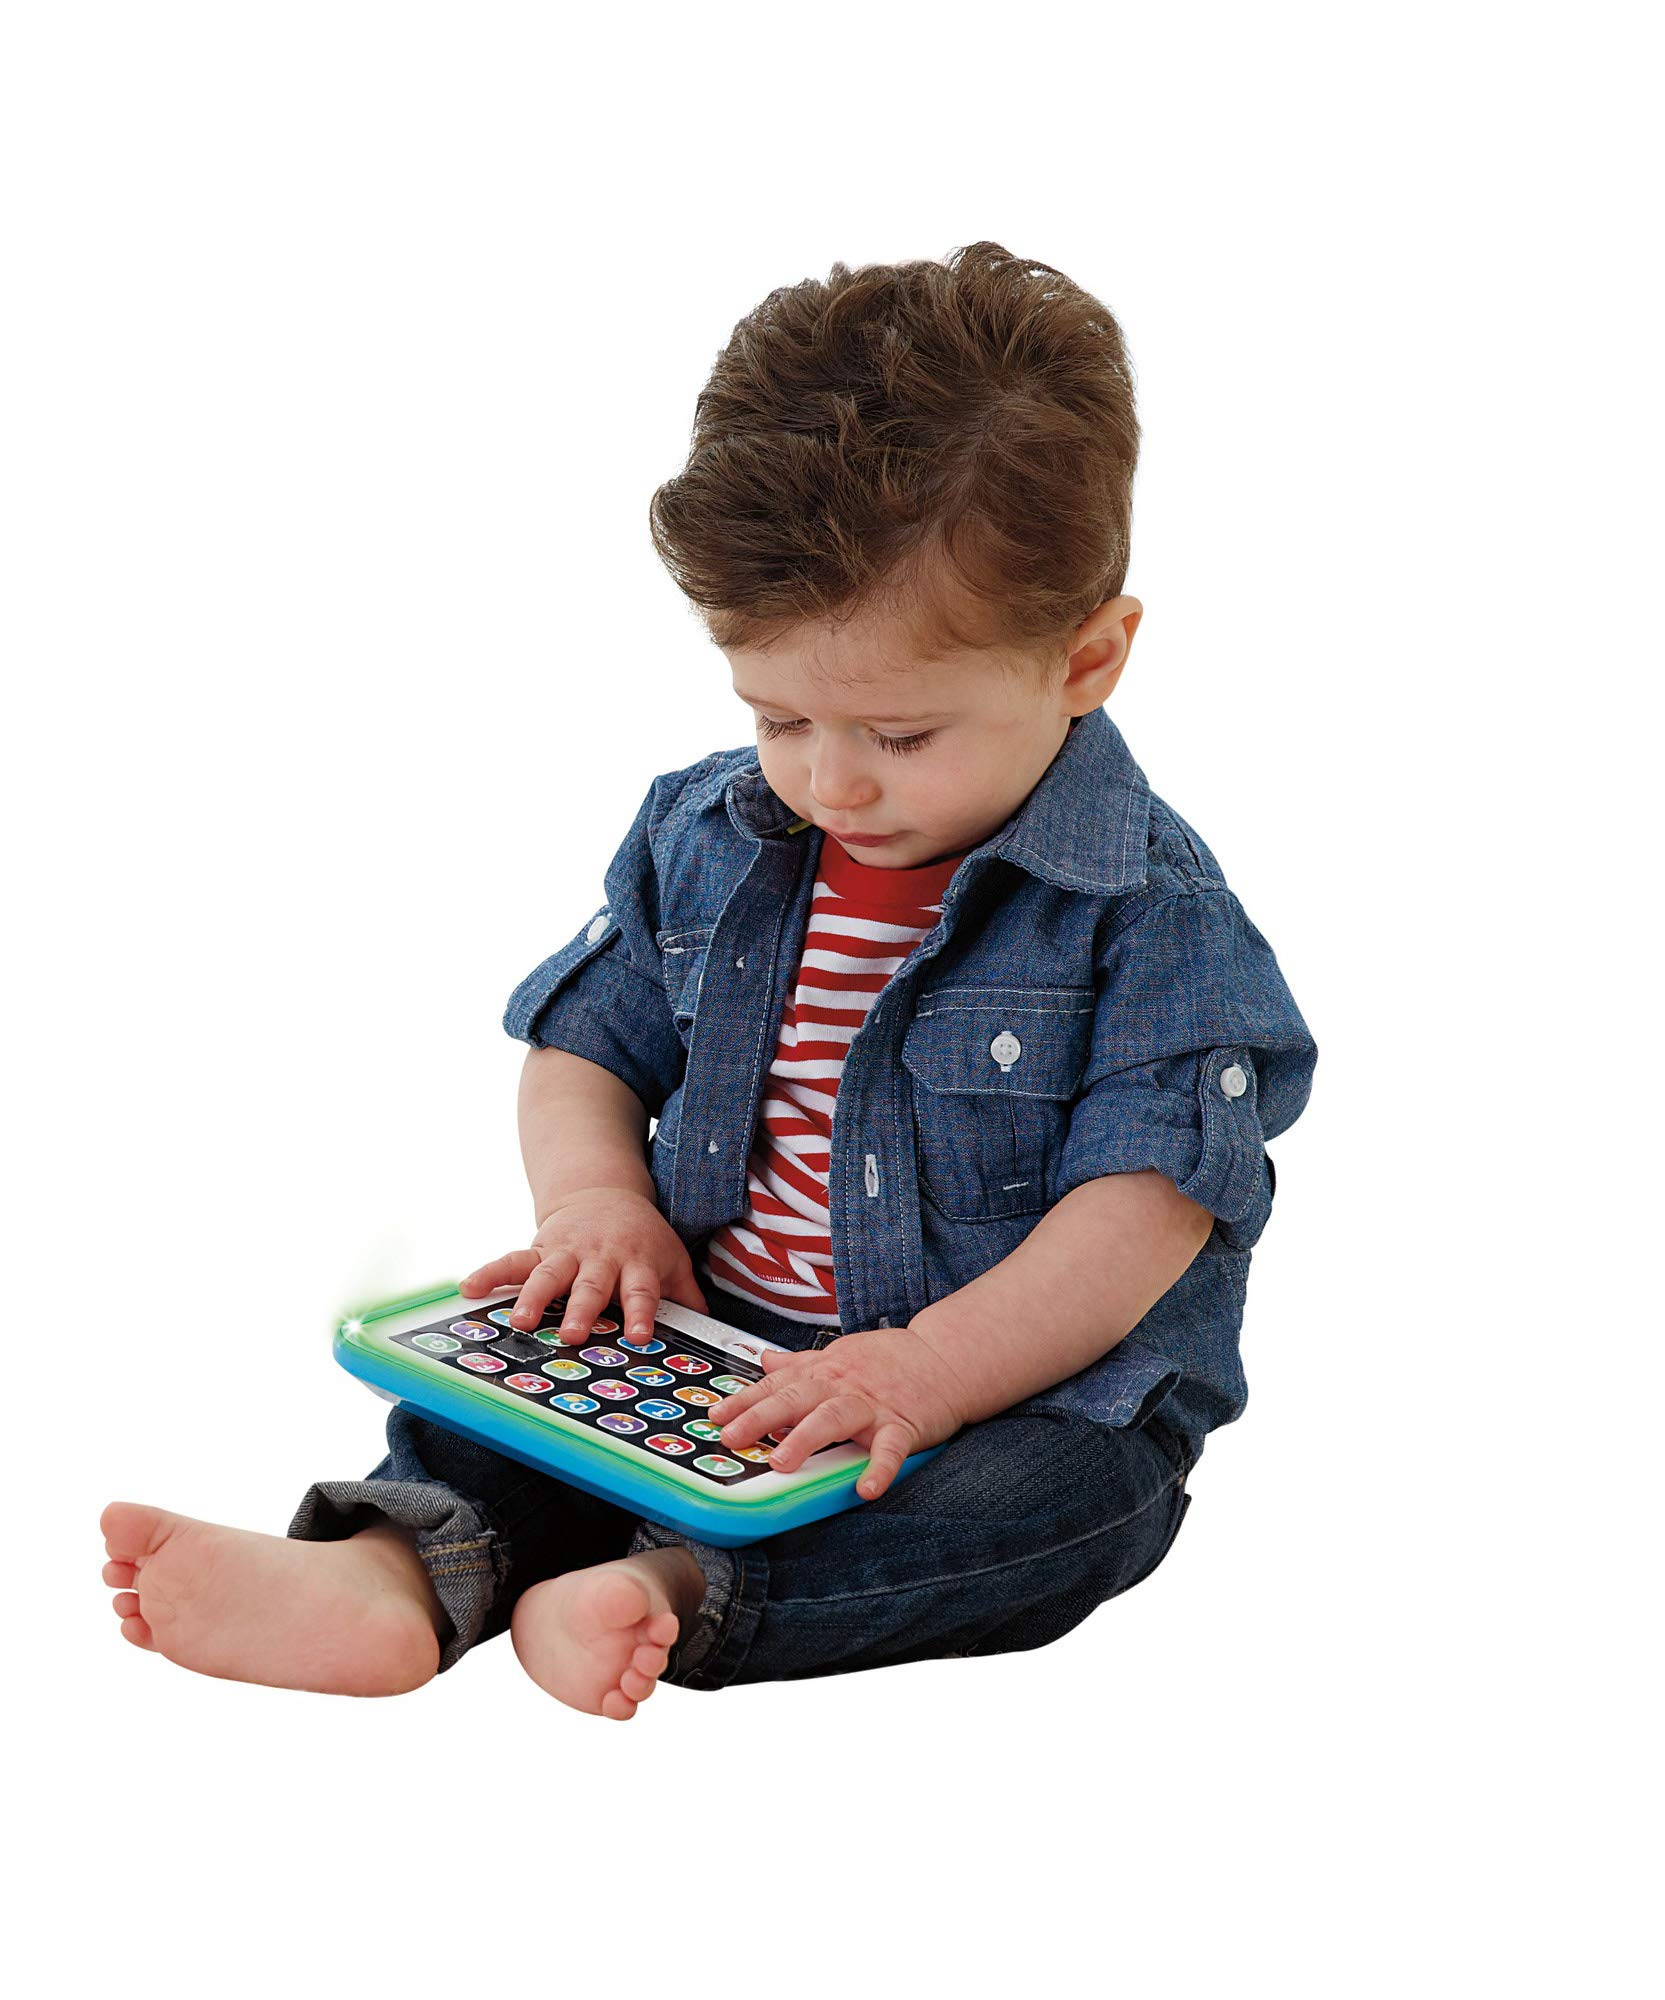 Fisher-Price Laugh & Learn Smart Stages Tablet, Blue by Fisher-Price (Image #2)